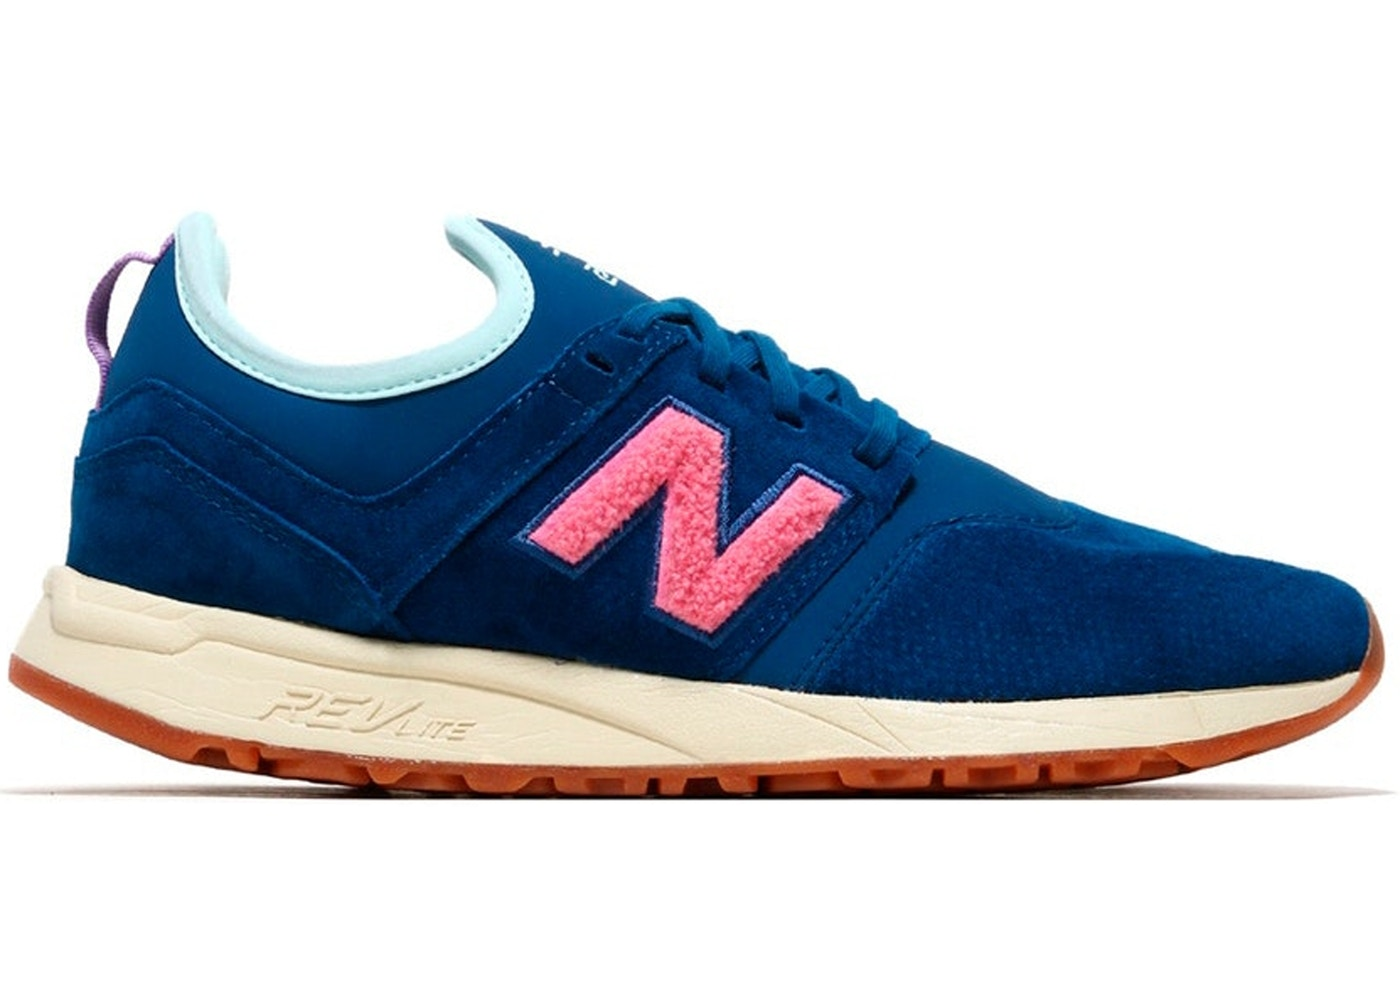 d1977eb127c38 New Balance 247 Titolo Deep Into the Blue - MRL247TI